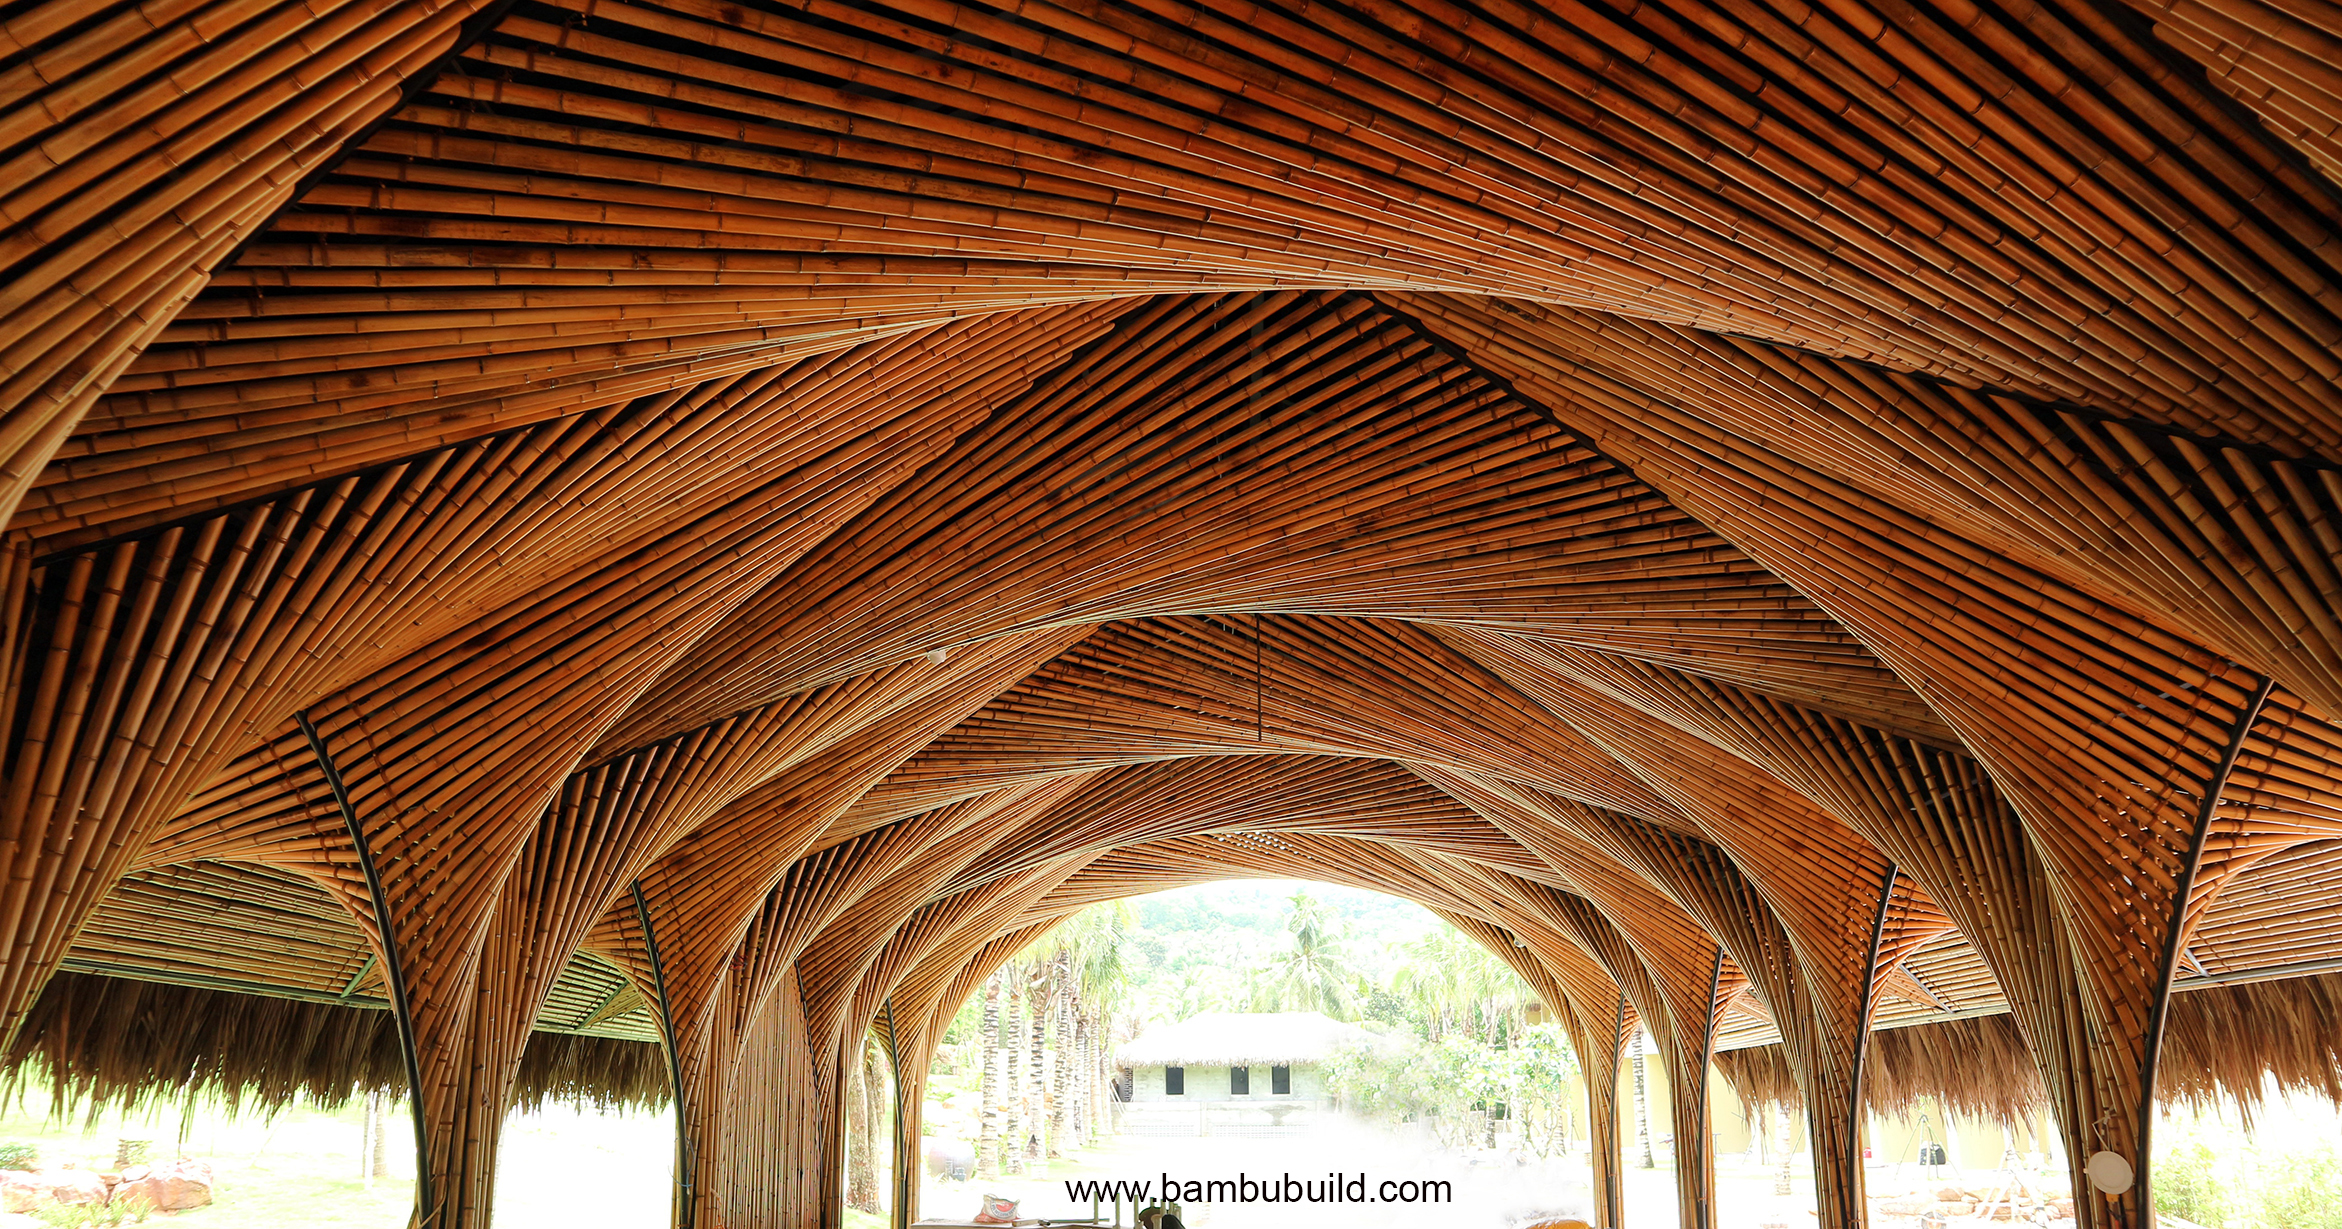 The Durability Of Bamboo Architecture